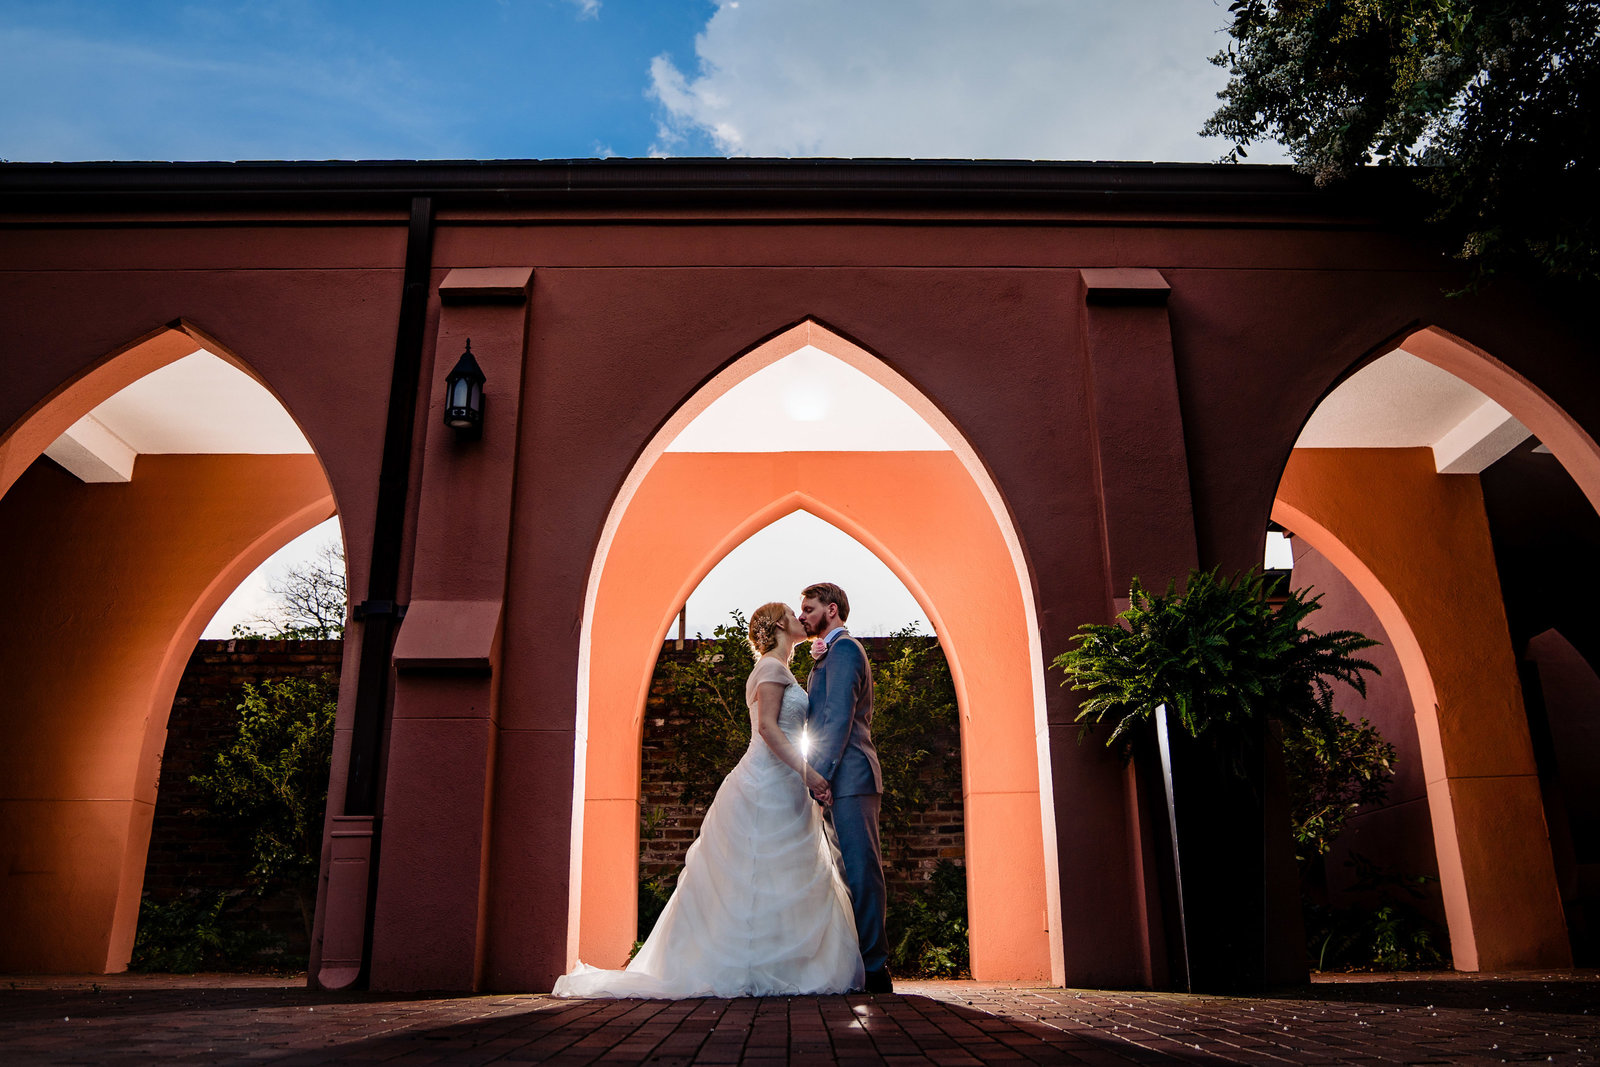 bride and groom standing under arches